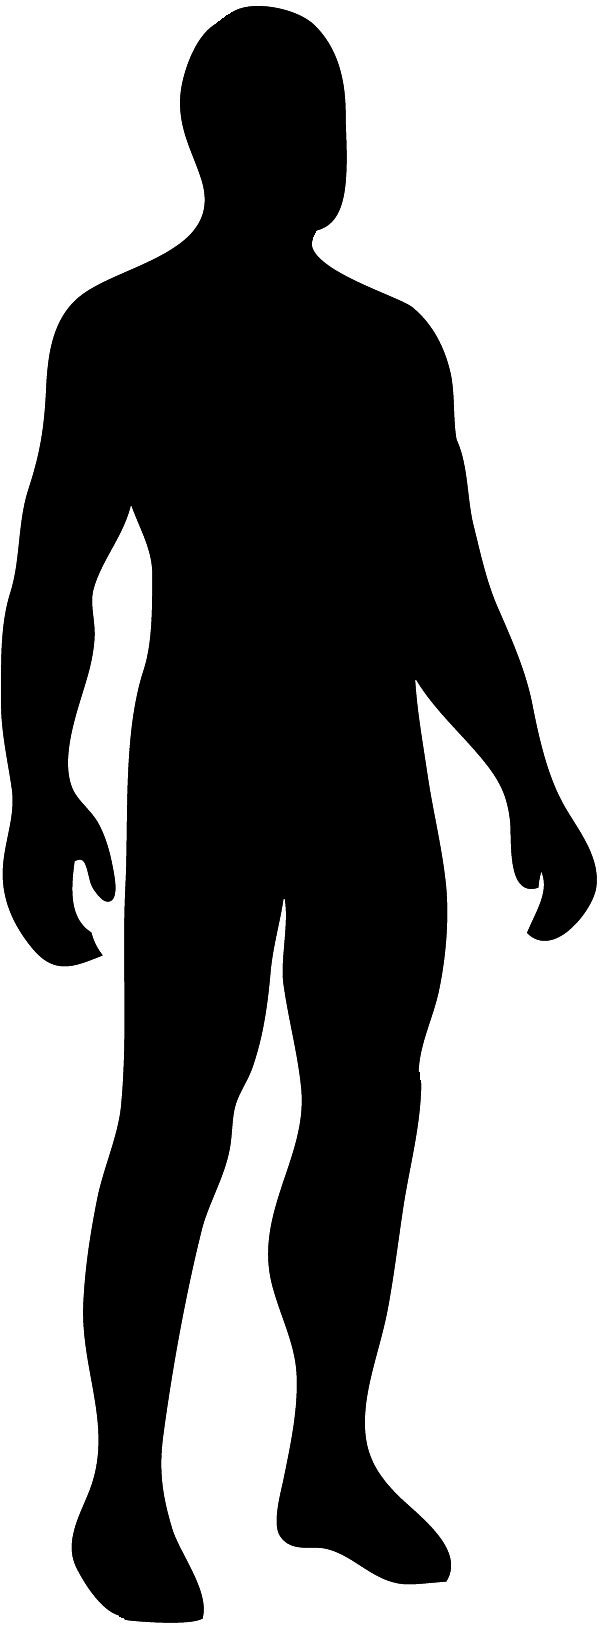 PNG Human Body Outline - 69396